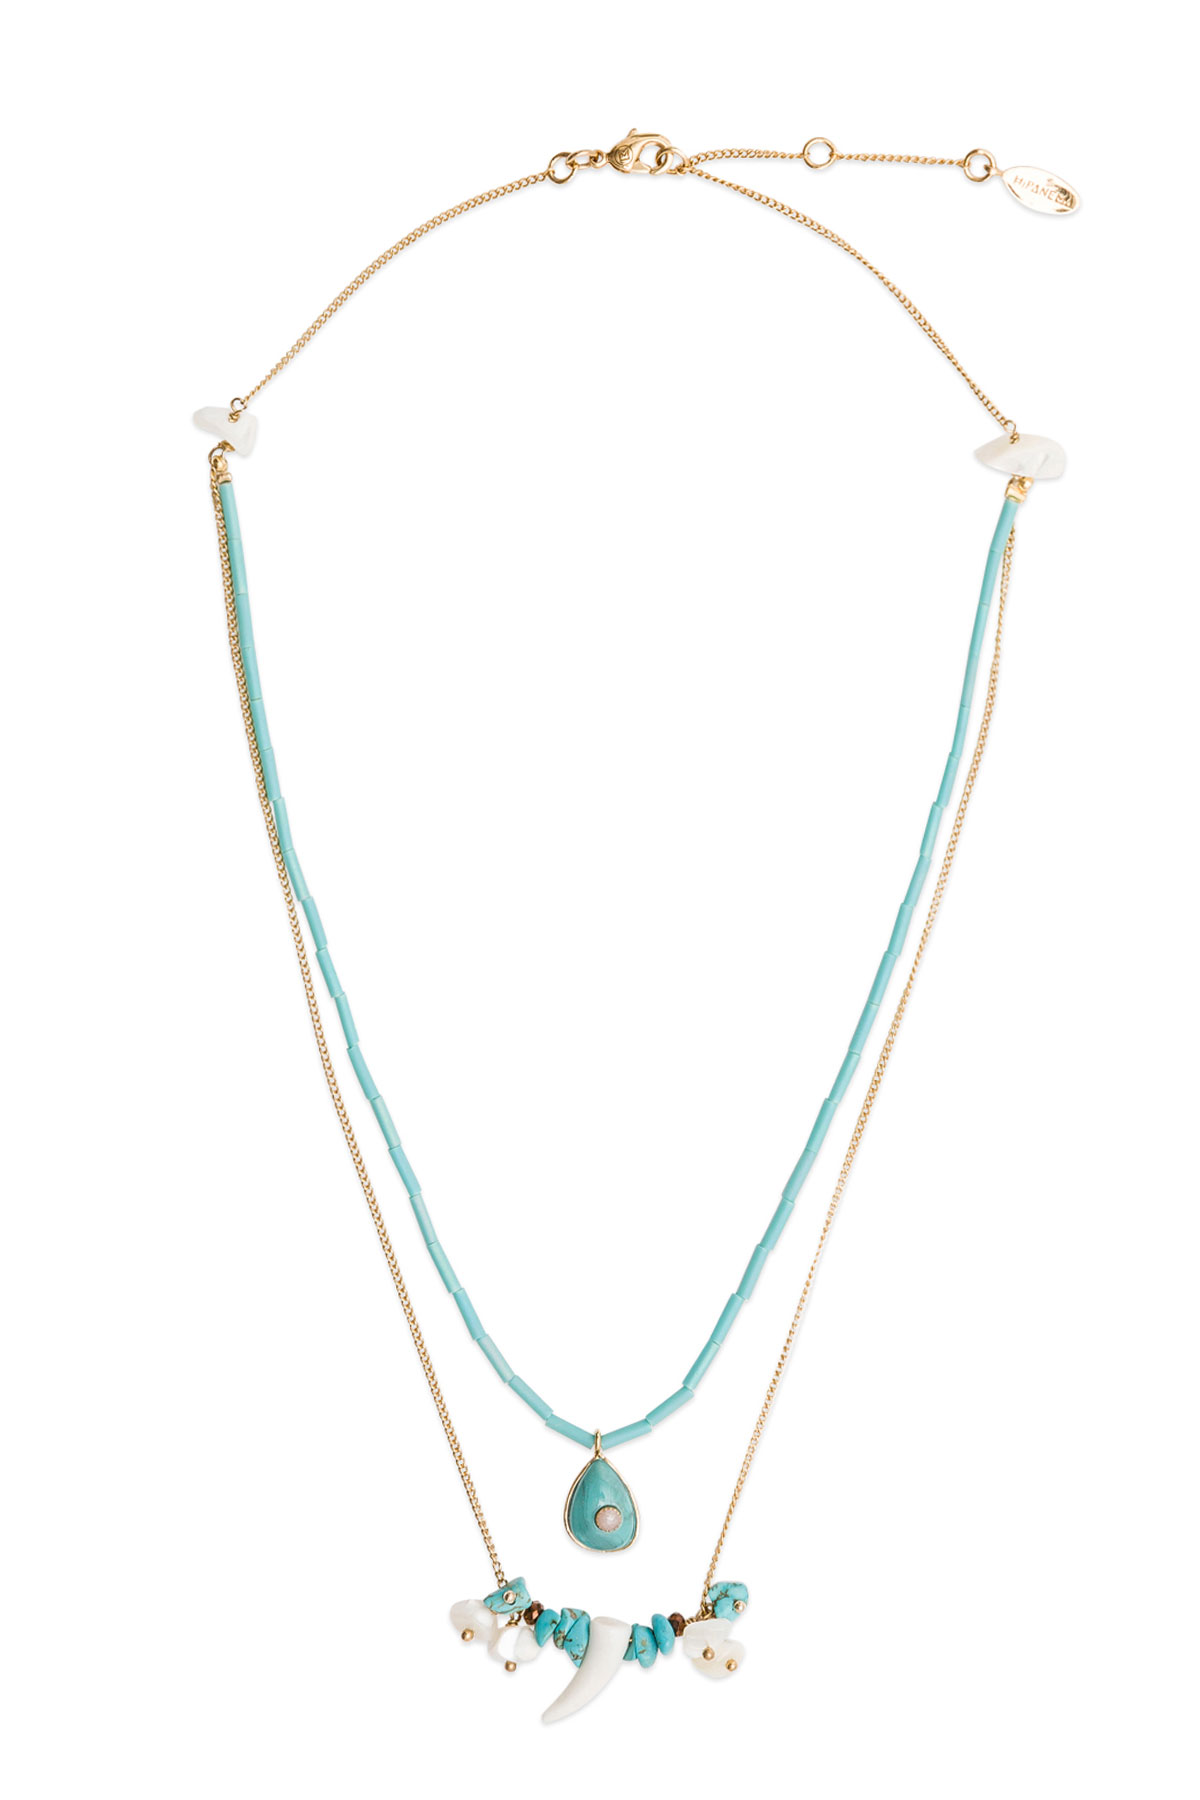 Tilos Beaded Layer Necklace - Turquoise 2